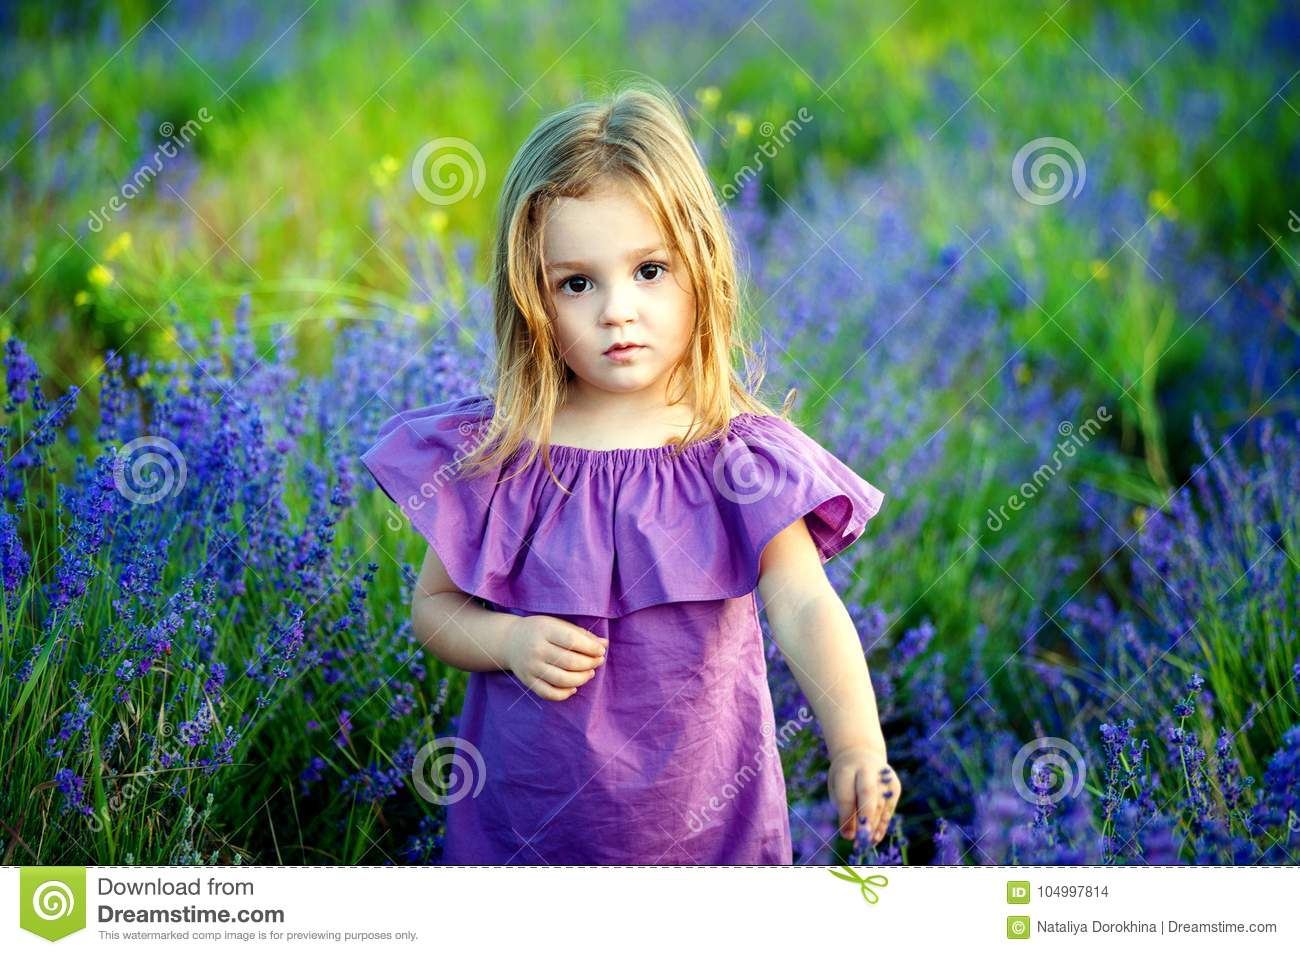 Little girl little girl in a pink dress looking hurt and sad look, in the summer on a flowering field background